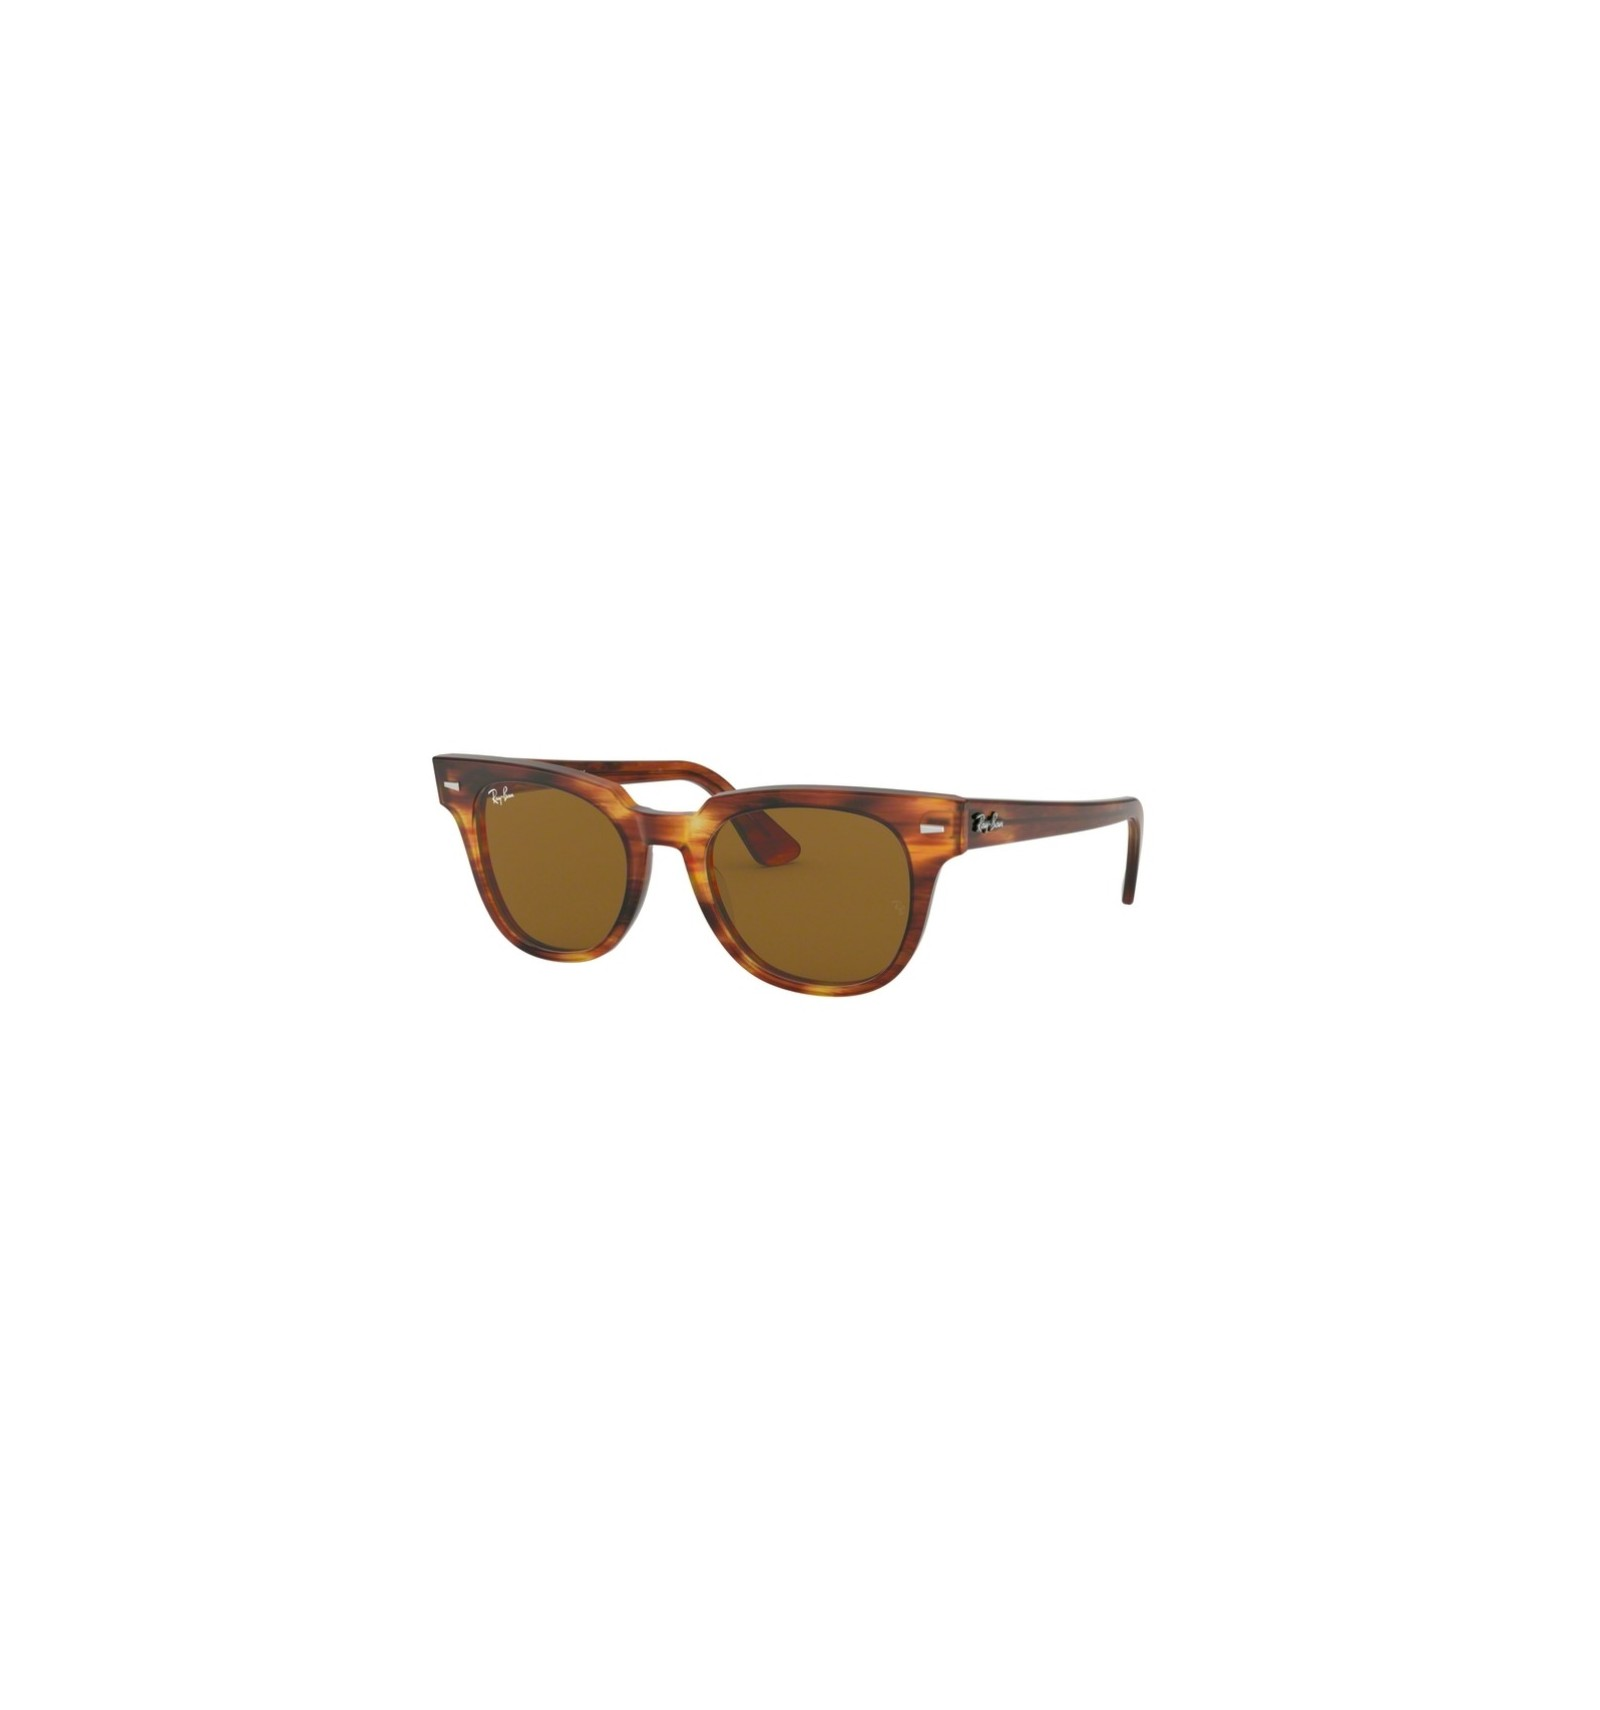 4bdd960fac729 Gafas de sol RAY BAN Meteor RB2168 Striped Havana - Brown (954-33)